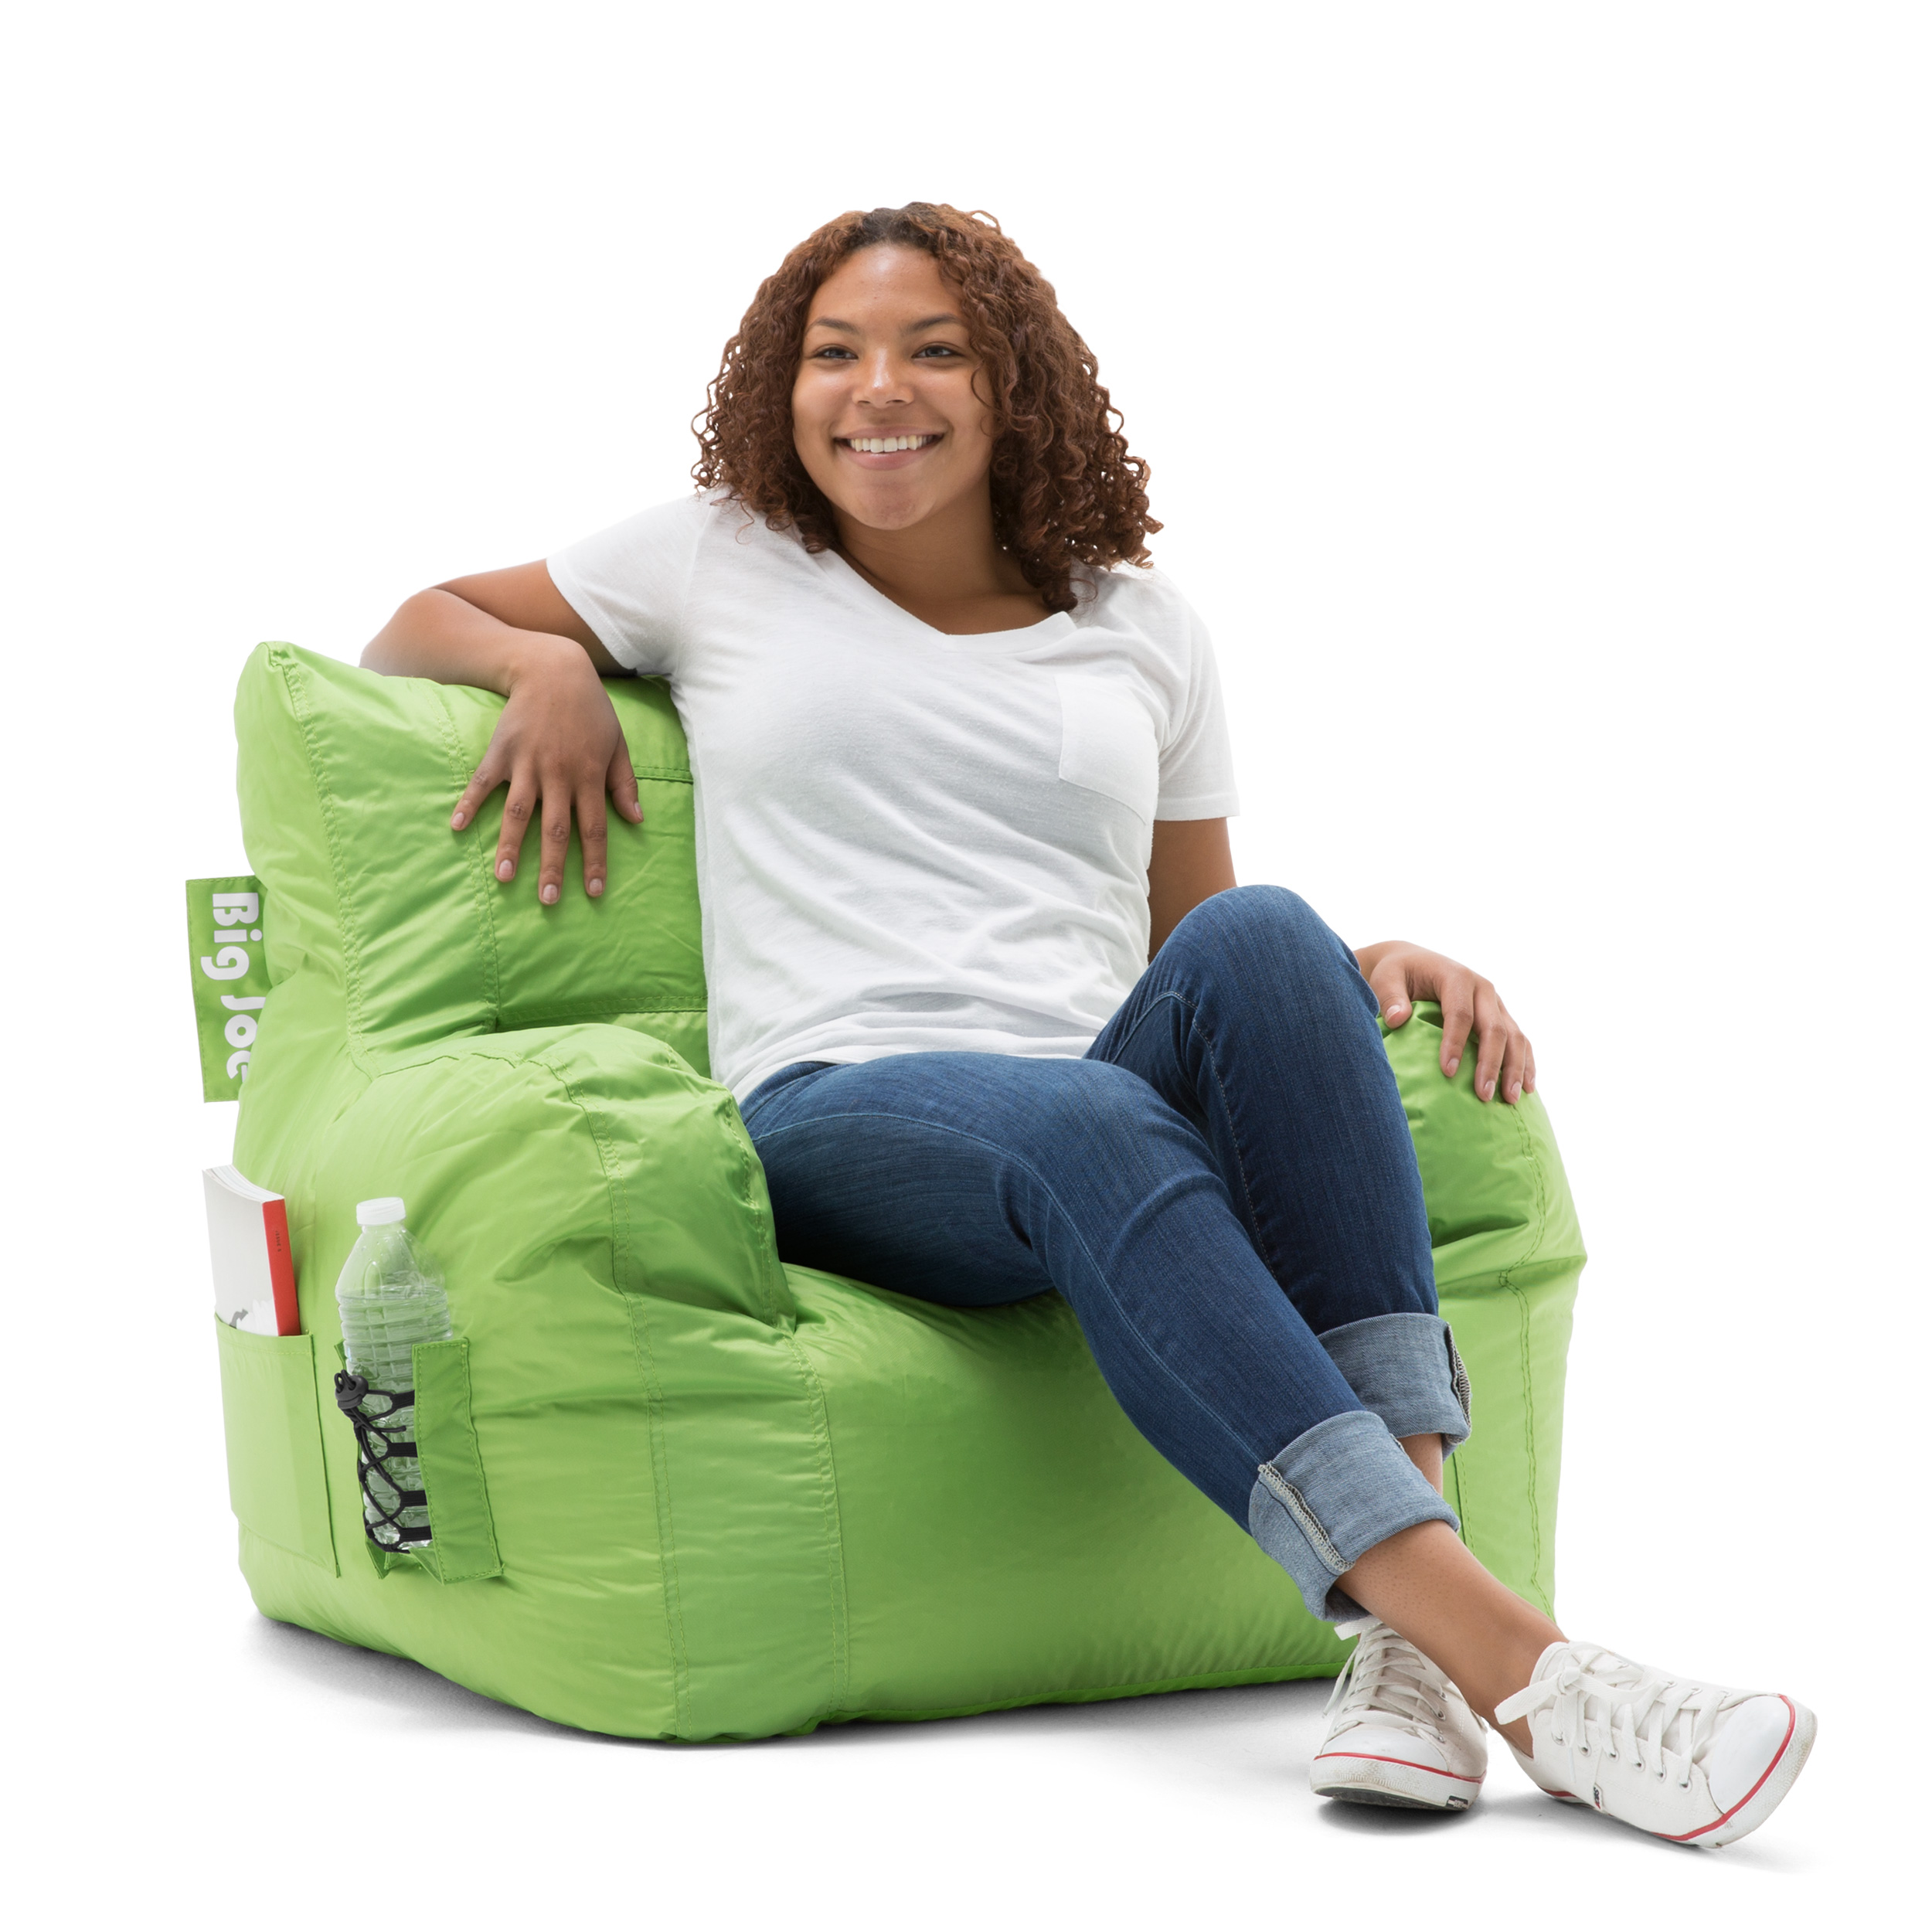 Magnificent Big Joe Bean Bag Chair Multiple Colors 33 X 32 X 25 Forskolin Free Trial Chair Design Images Forskolin Free Trialorg